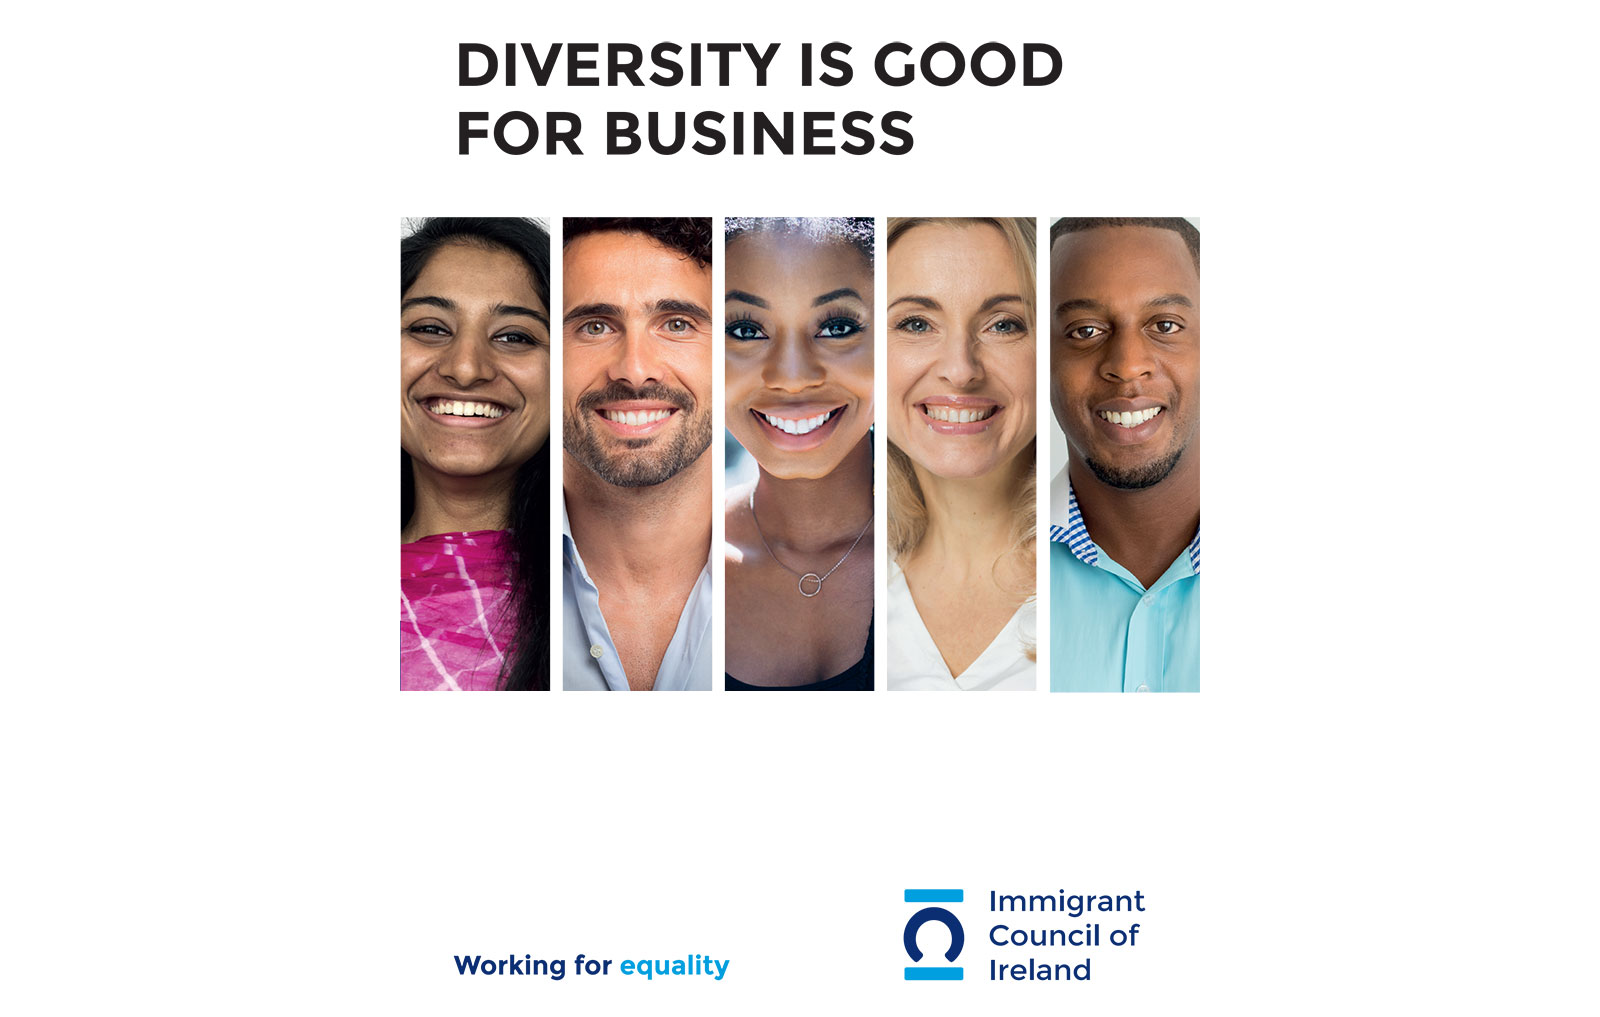 Diversity is Good for Business